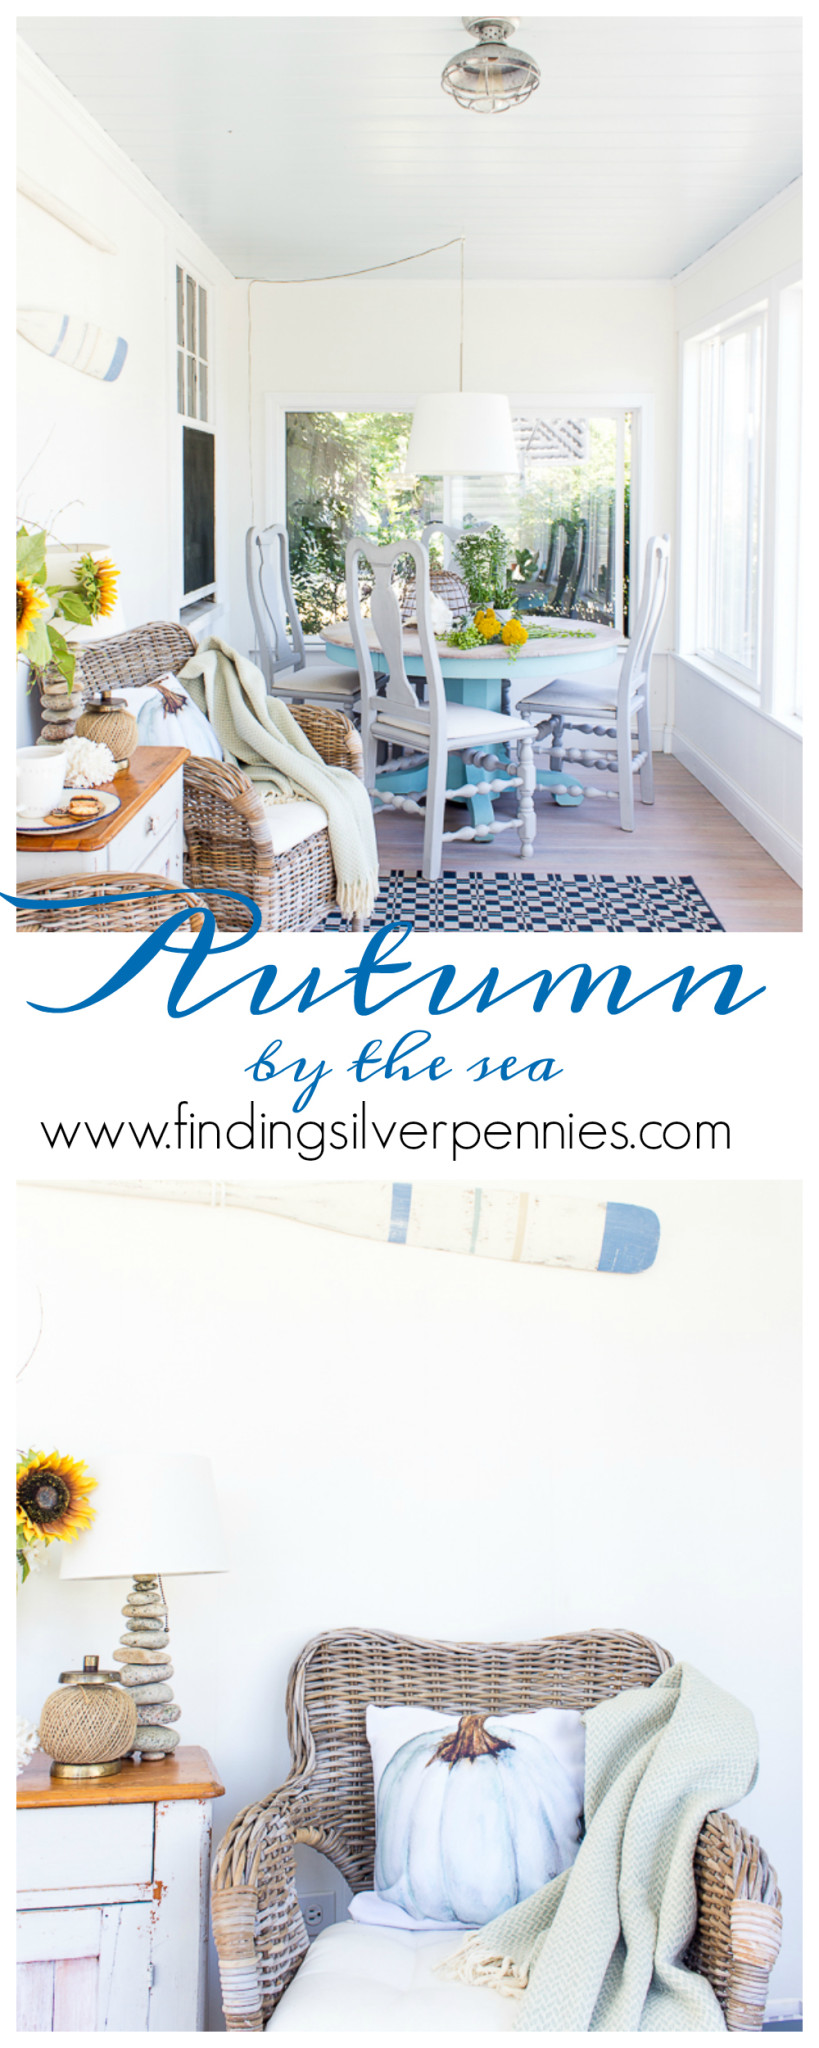 Fall in our Sunroom / easy and affordable tips for decorating by the sea! www.findingsilverpennies.com